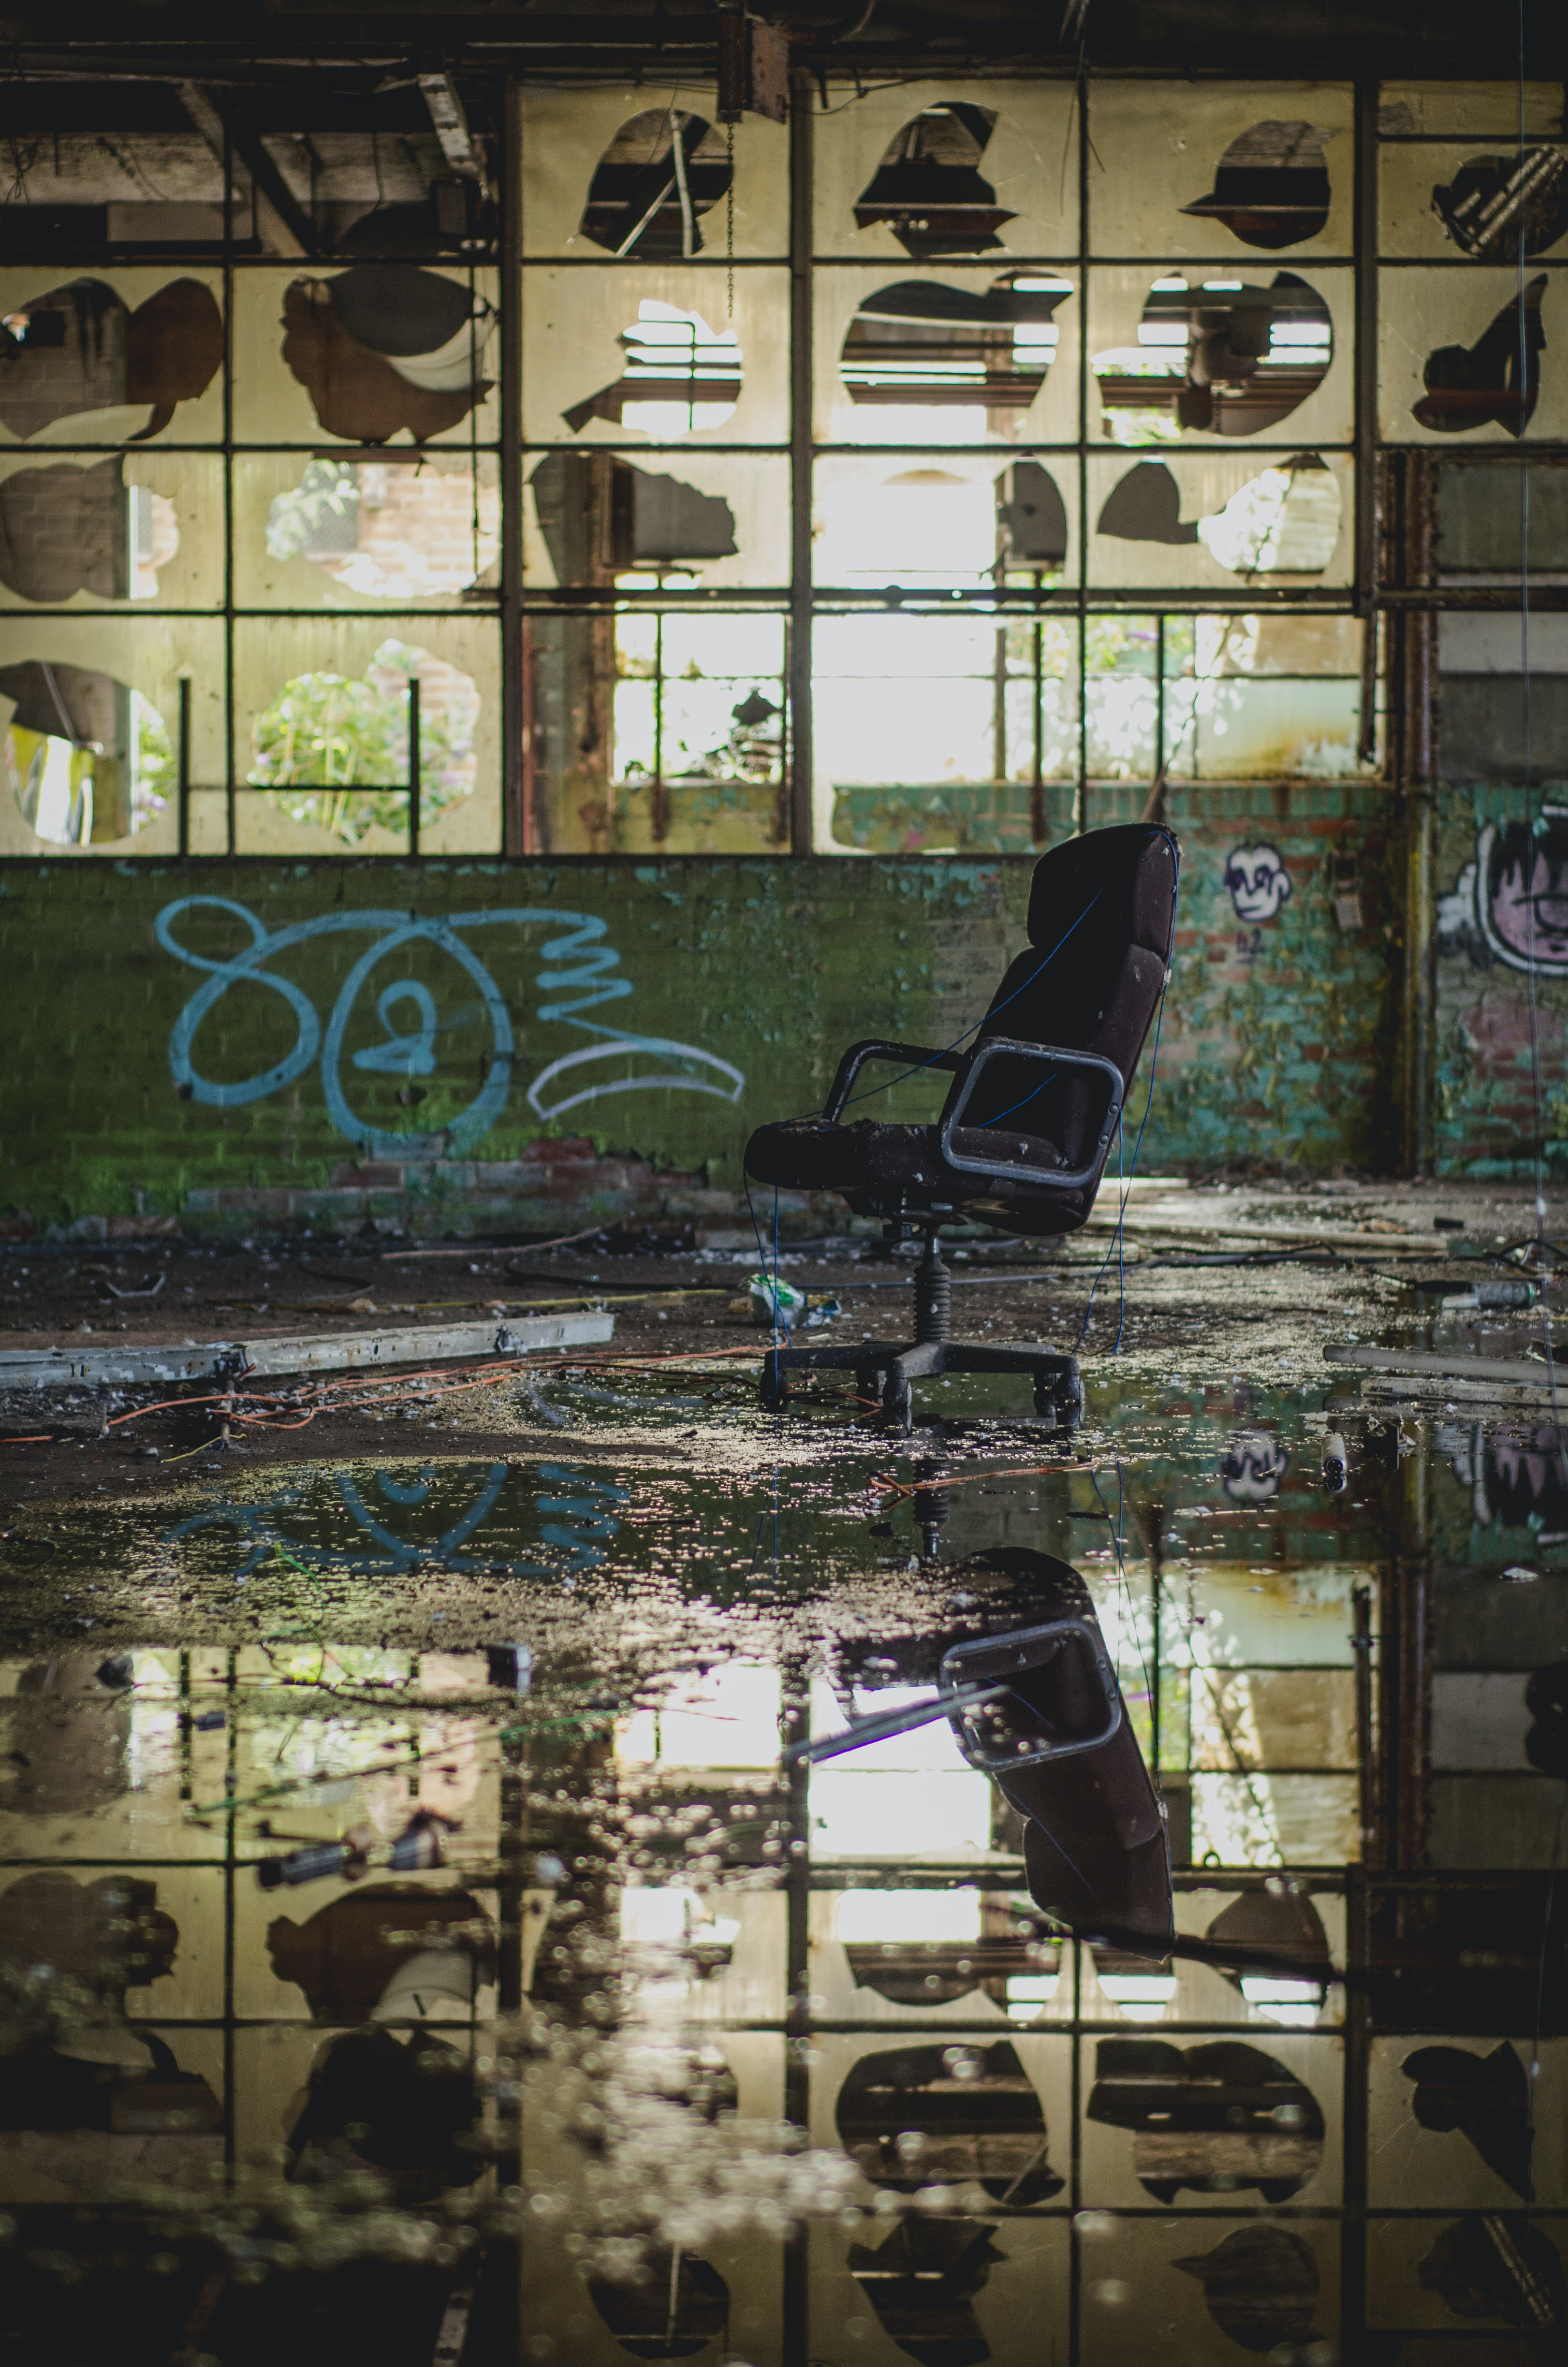 Abandoned urban warehouse with chair and water reflection with graffiti tags on wall, Sheffield United Kingdom